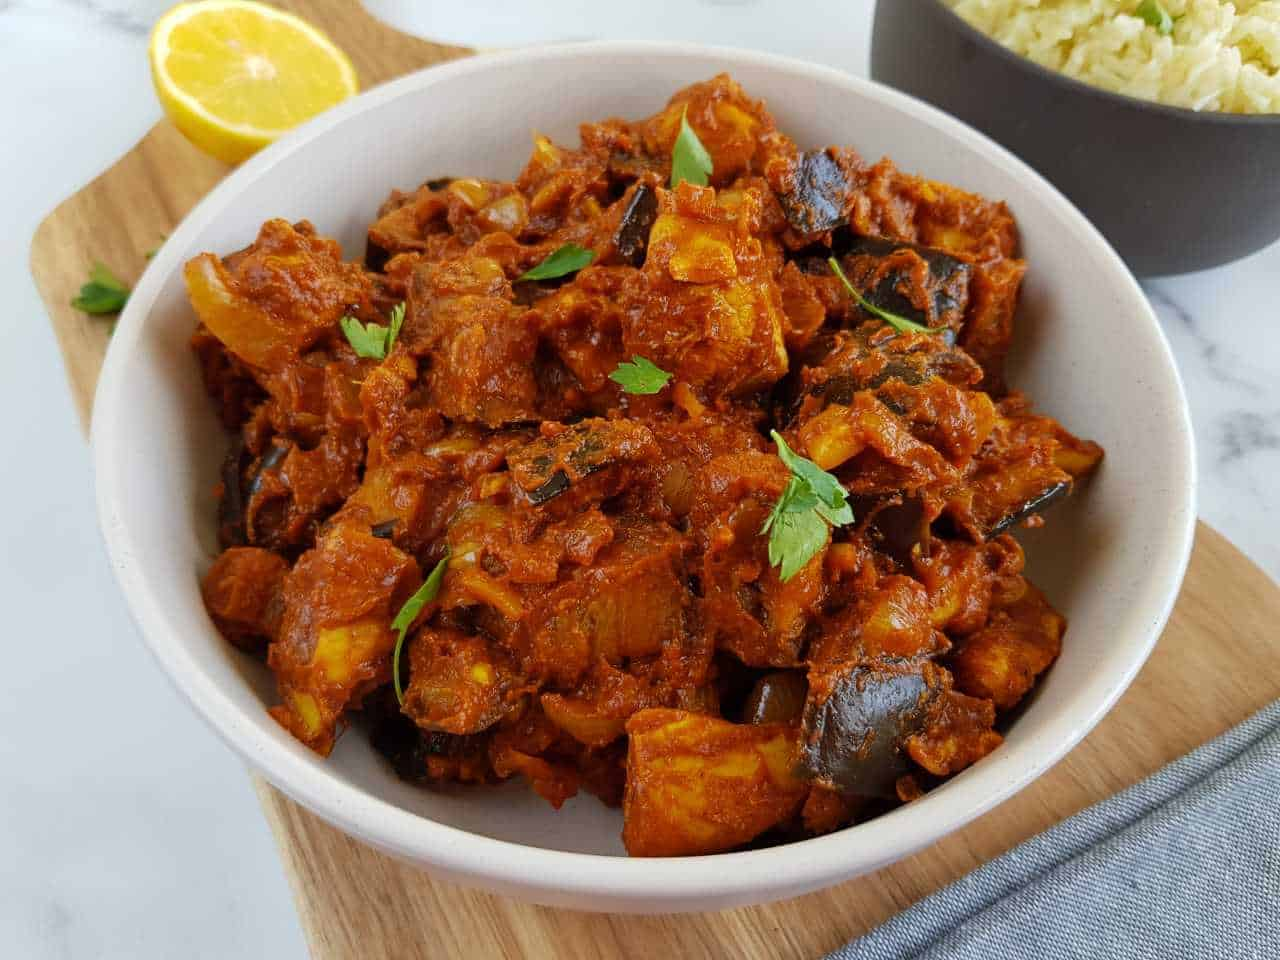 Chicken and aubergine curry in a white bowl.